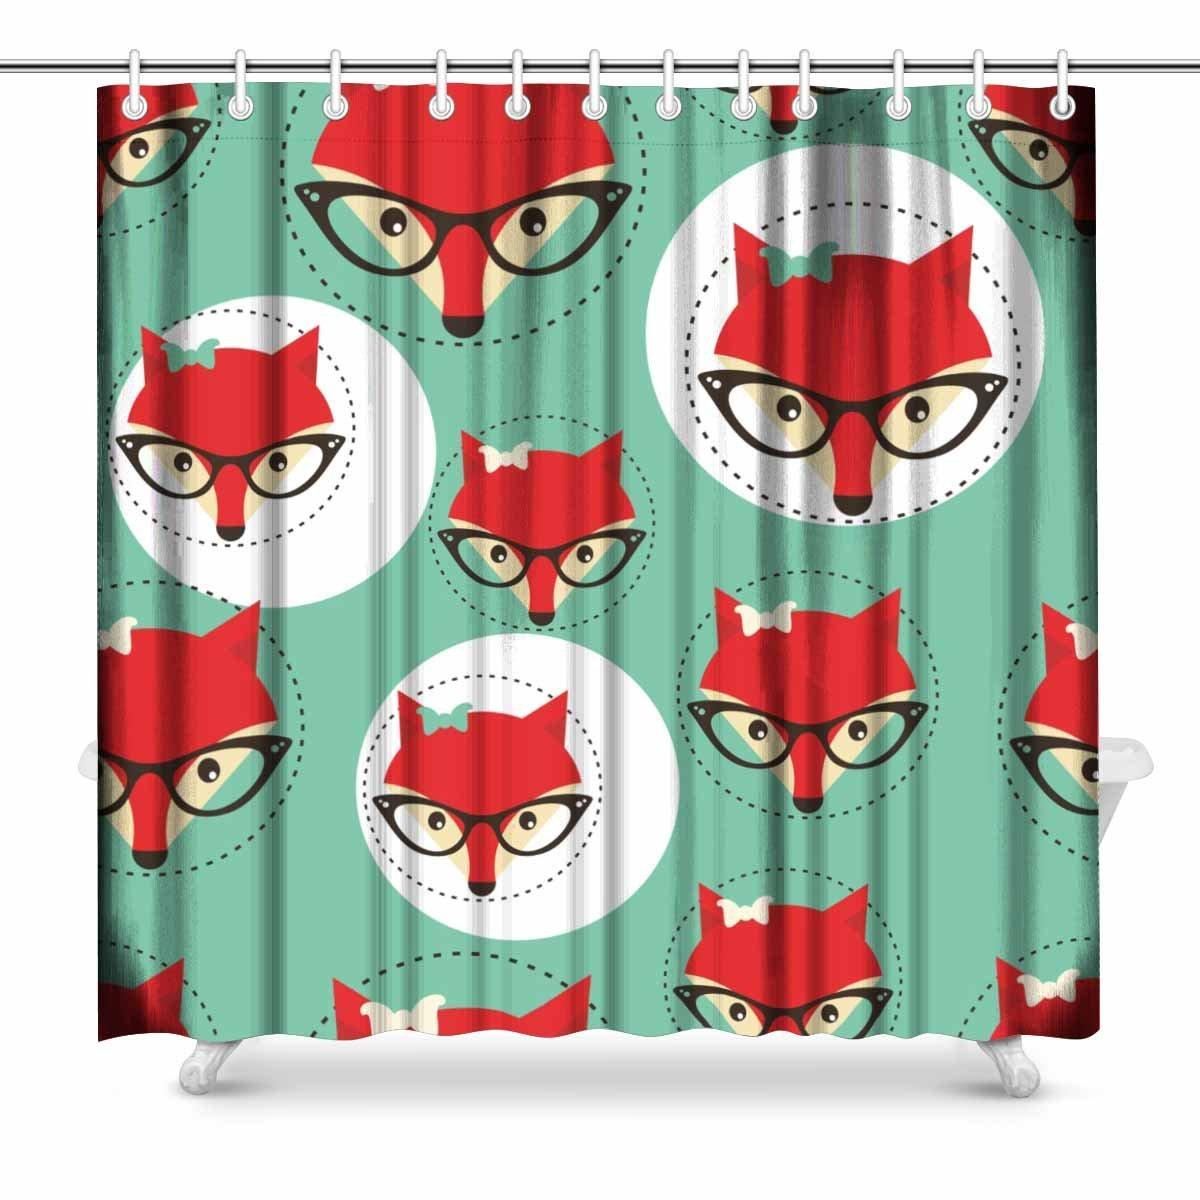 2018 Aplysia Foxes Faces In Glasses Bathroom Accessories Shower ...